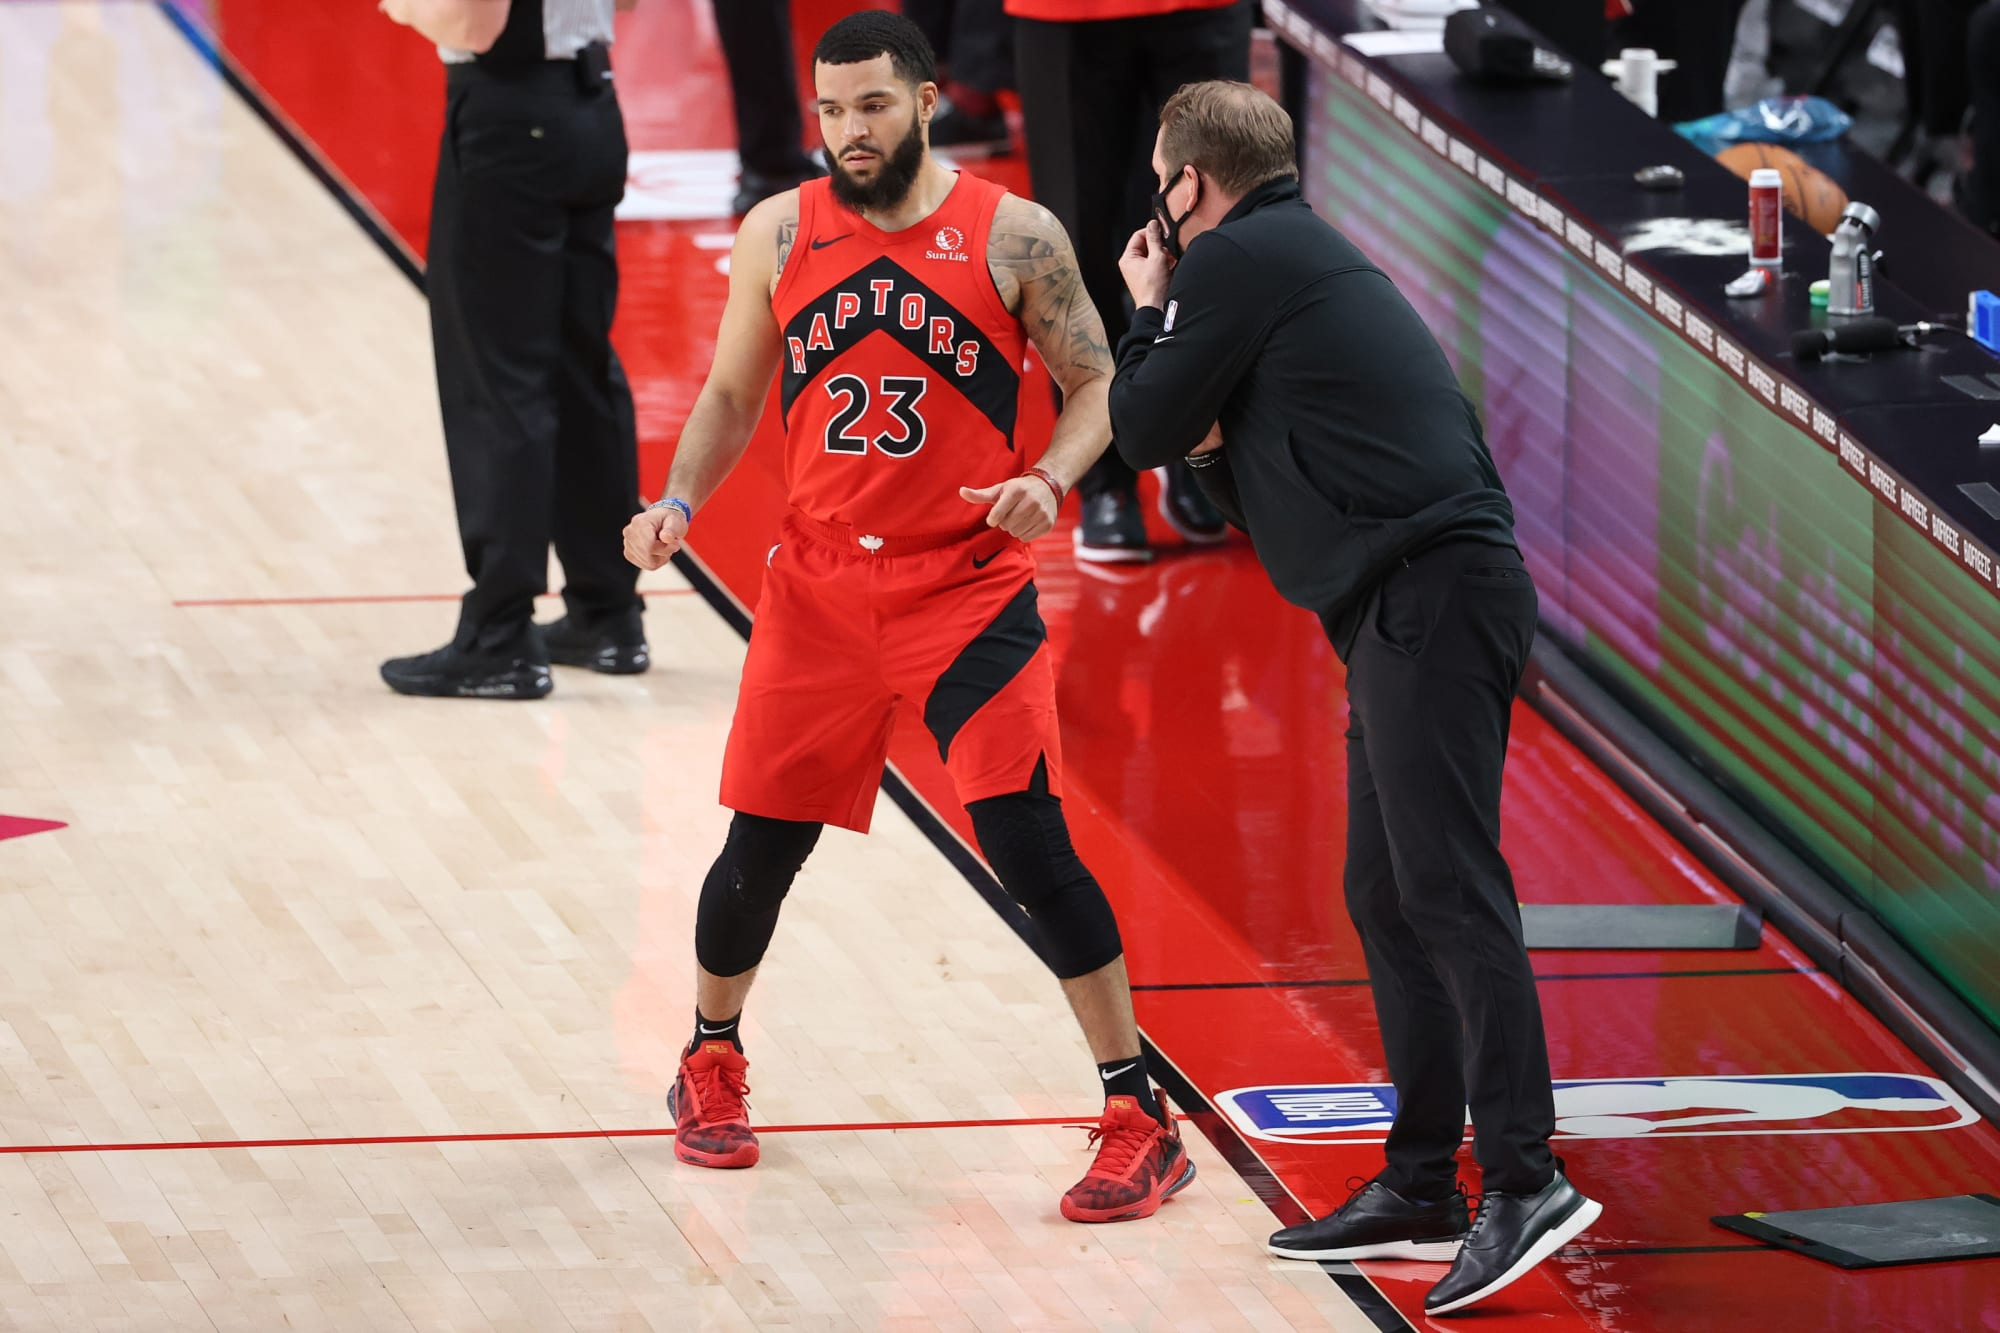 Raptors: This stat shows just how unlucky Toronto has been during their 2-8 start